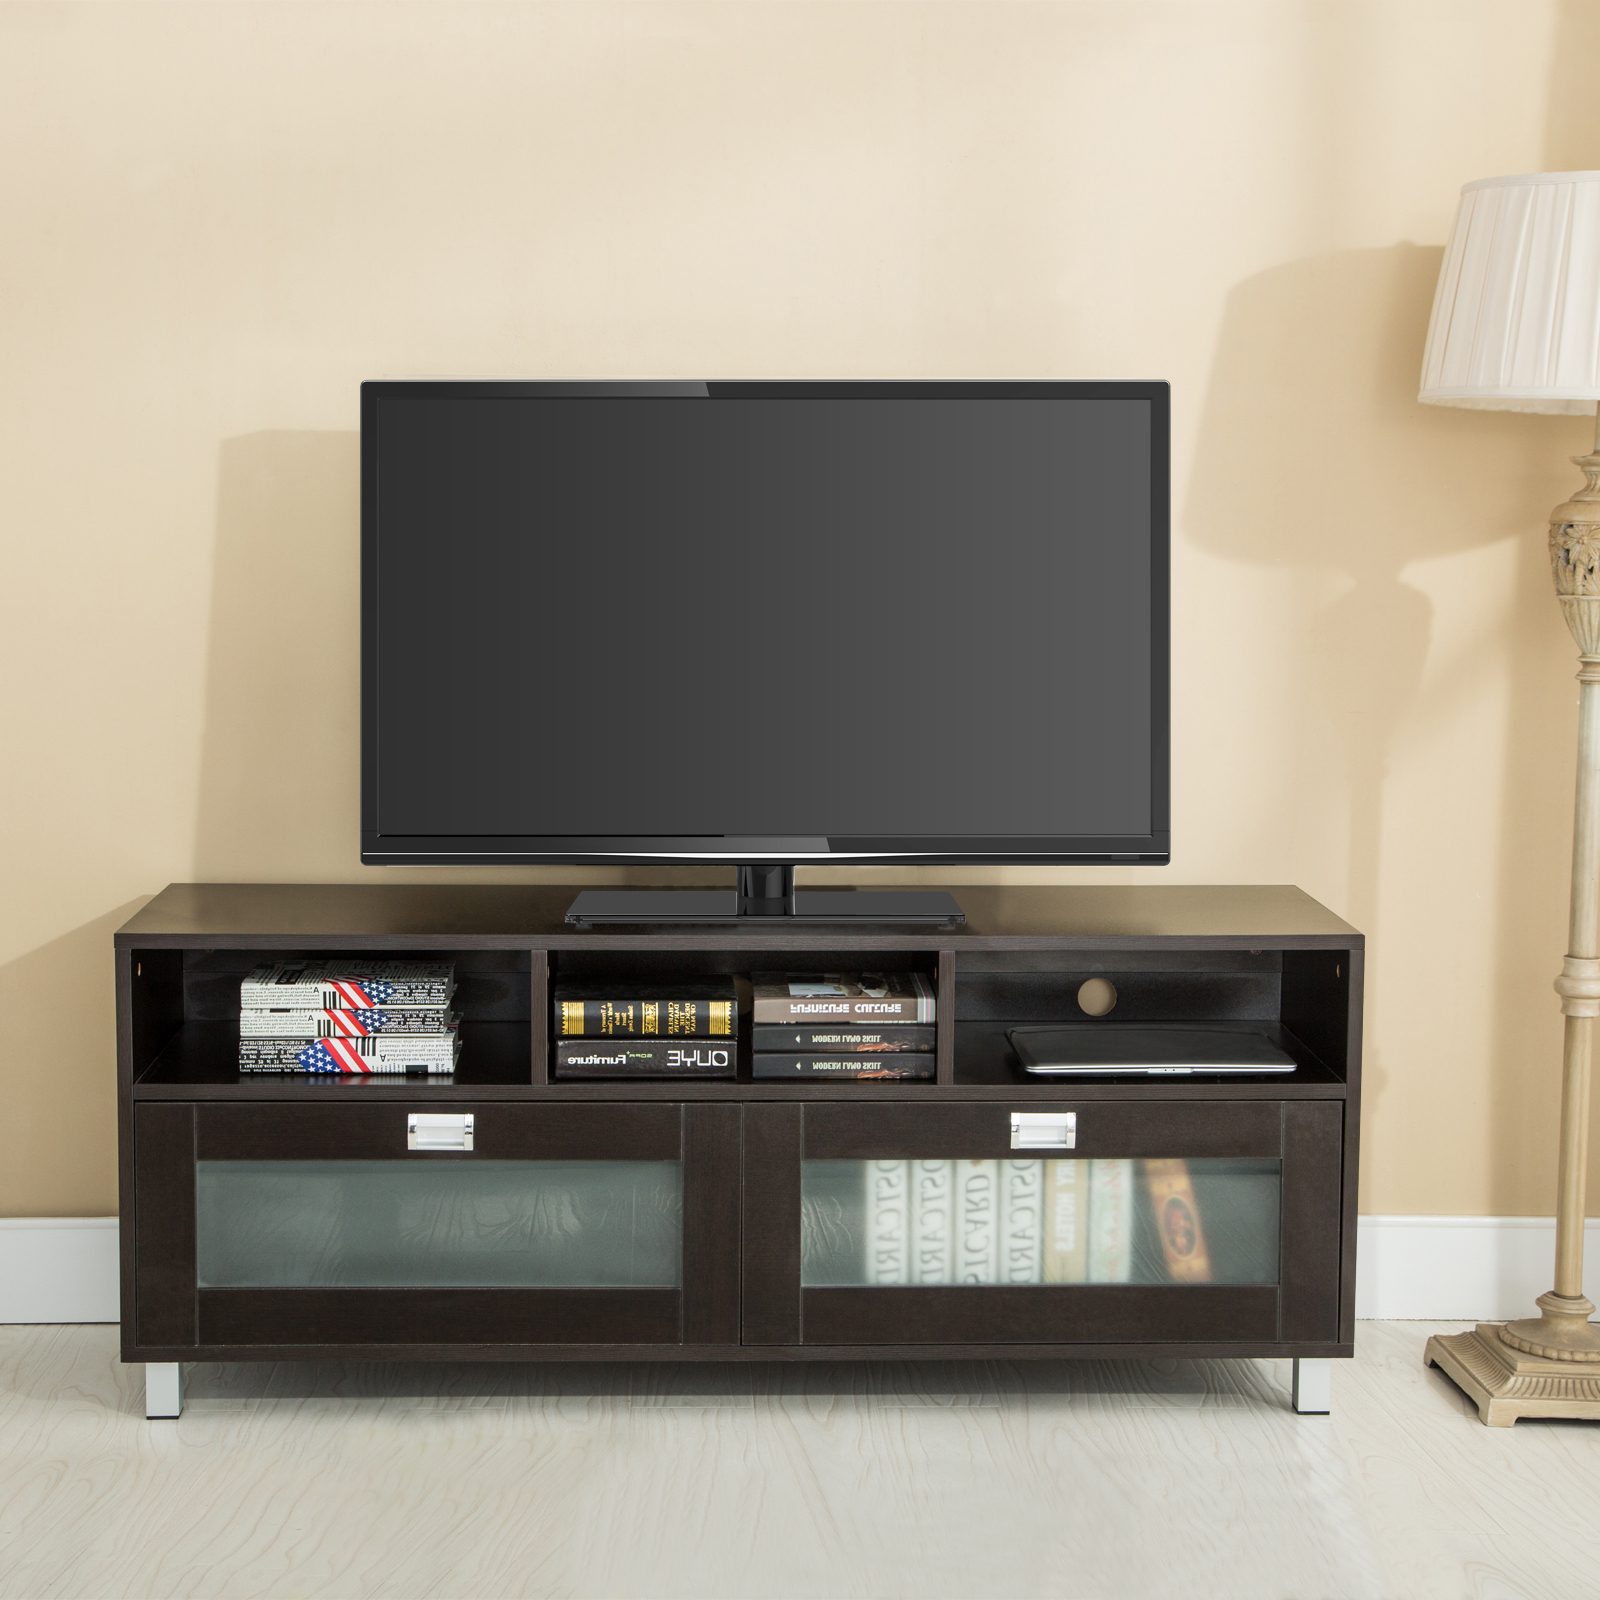 Tv Stand Cabinet (View 4 of 20)